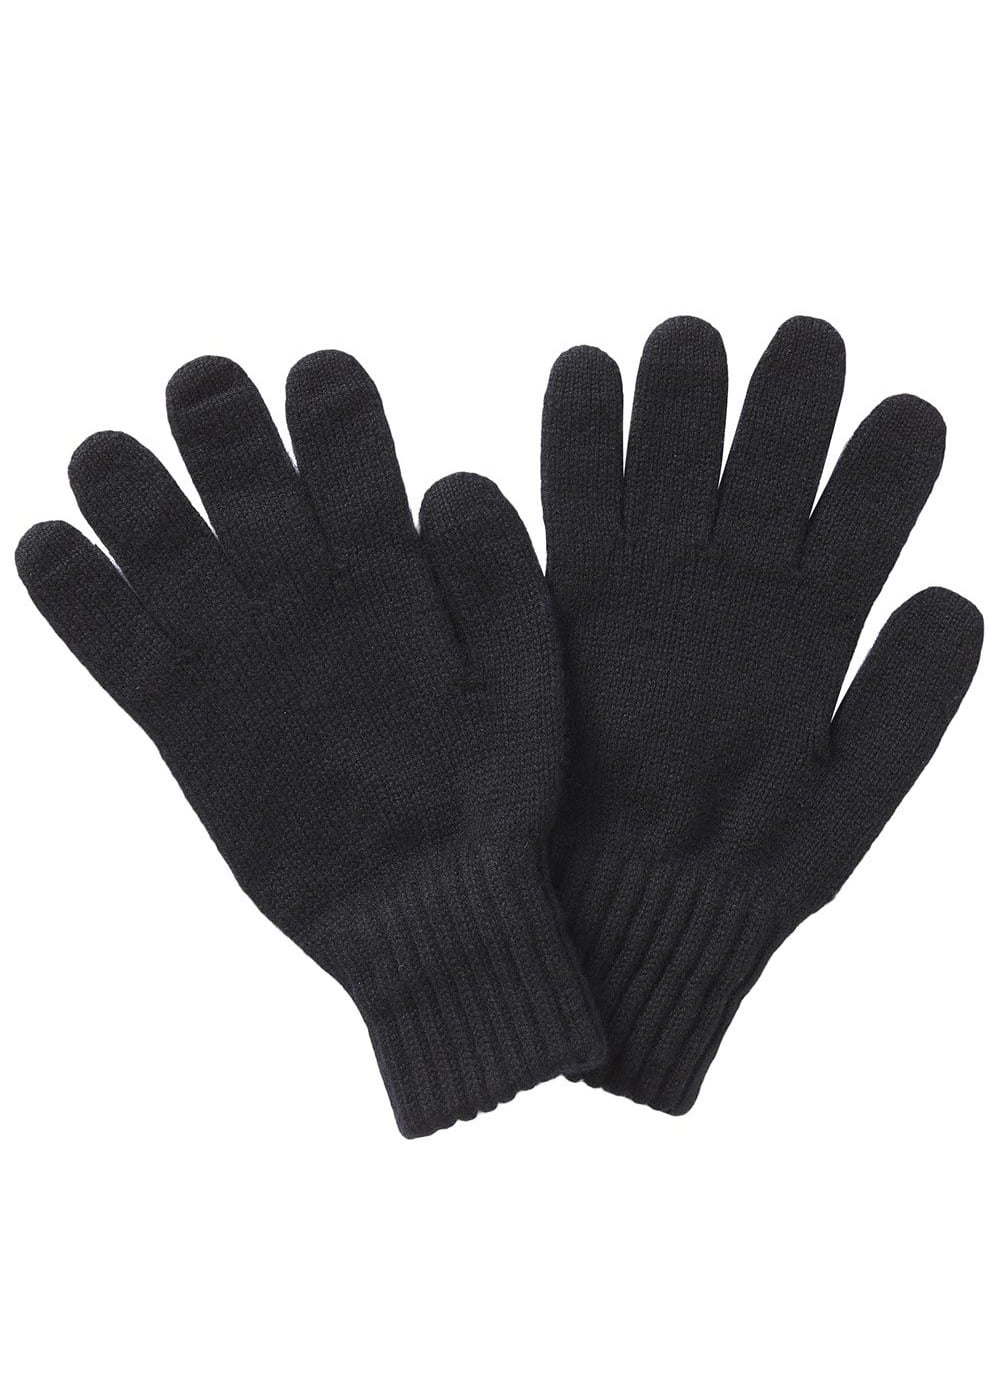 Barbour Lambswool Gloves  Large Image